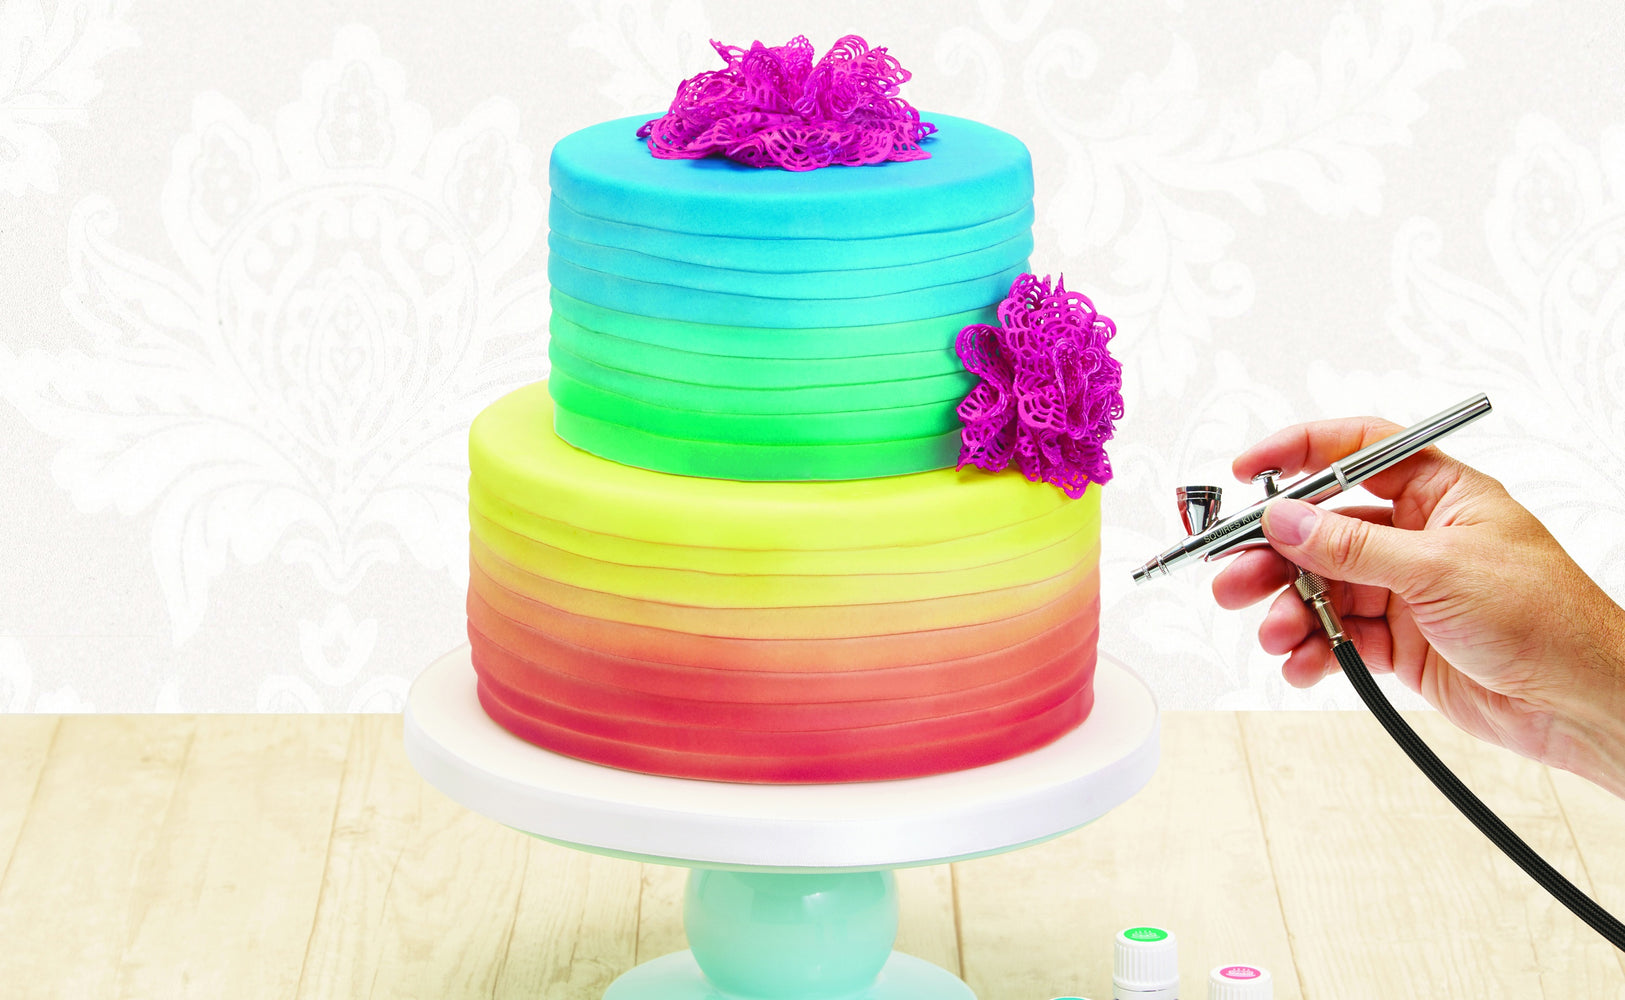 Bakell™ Airbrush Gun Kit - Bakell.com | Airbrush Gun Designed Specifically for Cake Decorating, Crafting & Baking